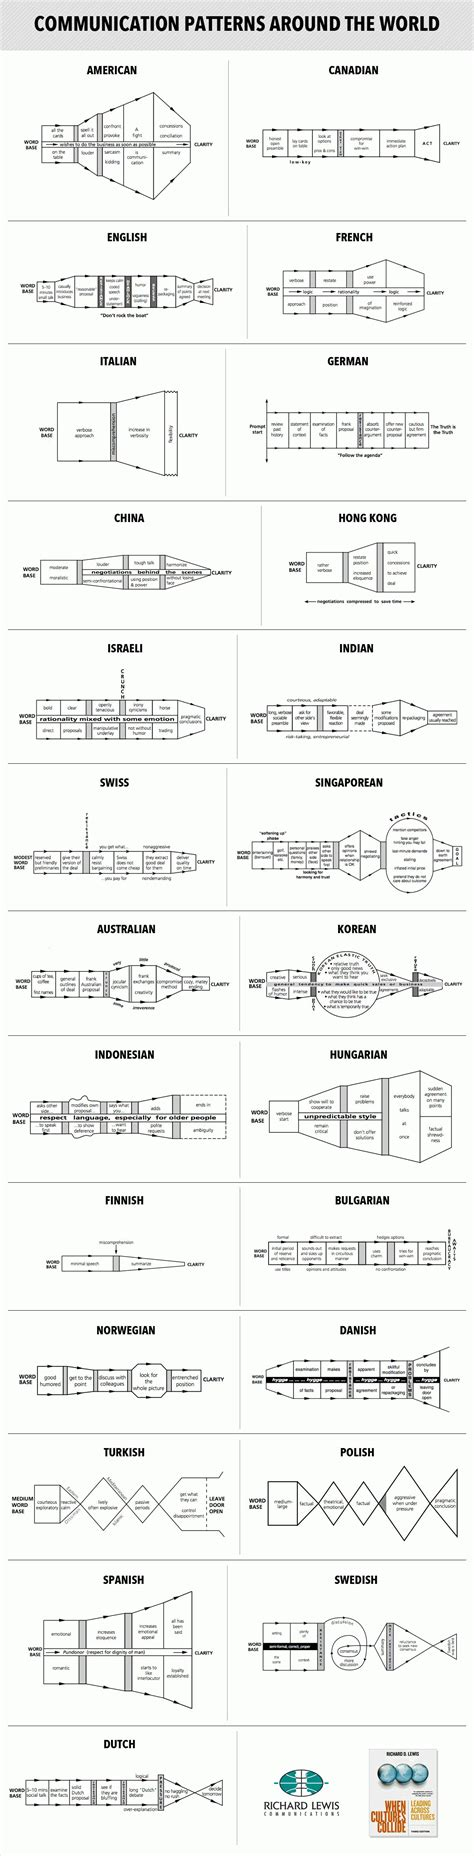 pattern of communication in organization how business communication patterns differ by culture snap